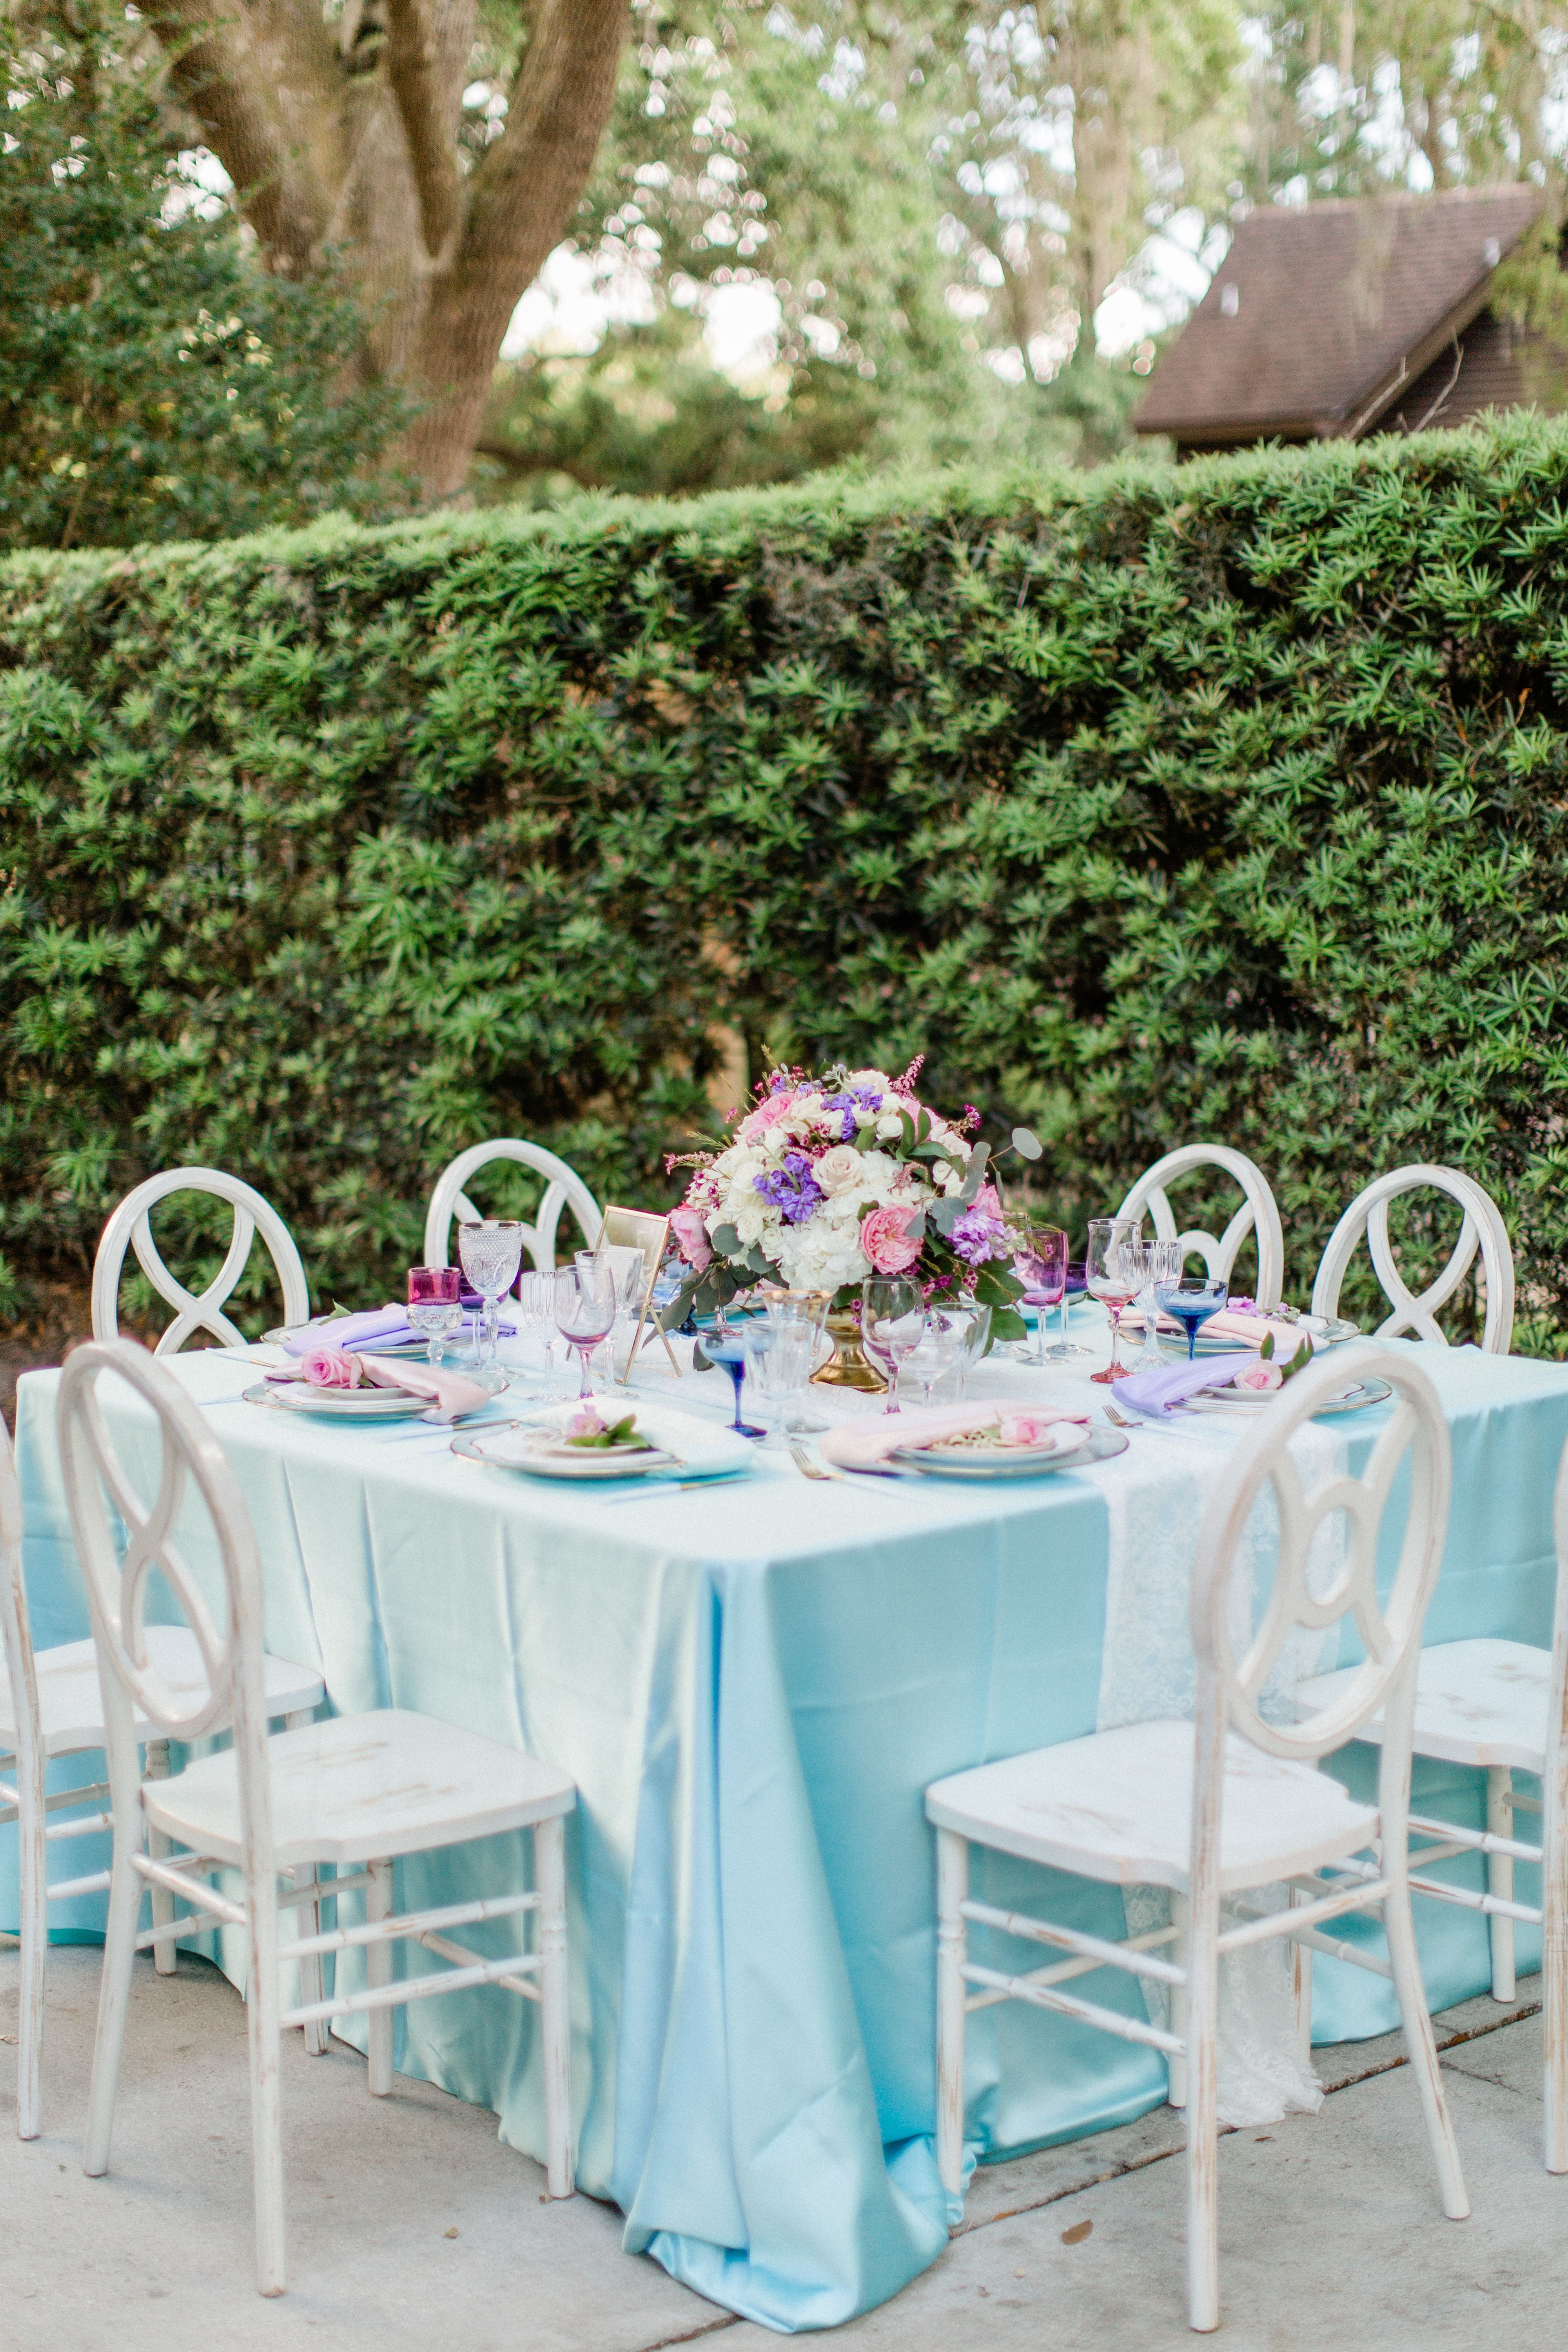 White Vineyard Mismatched Chairs Our Big Dayy